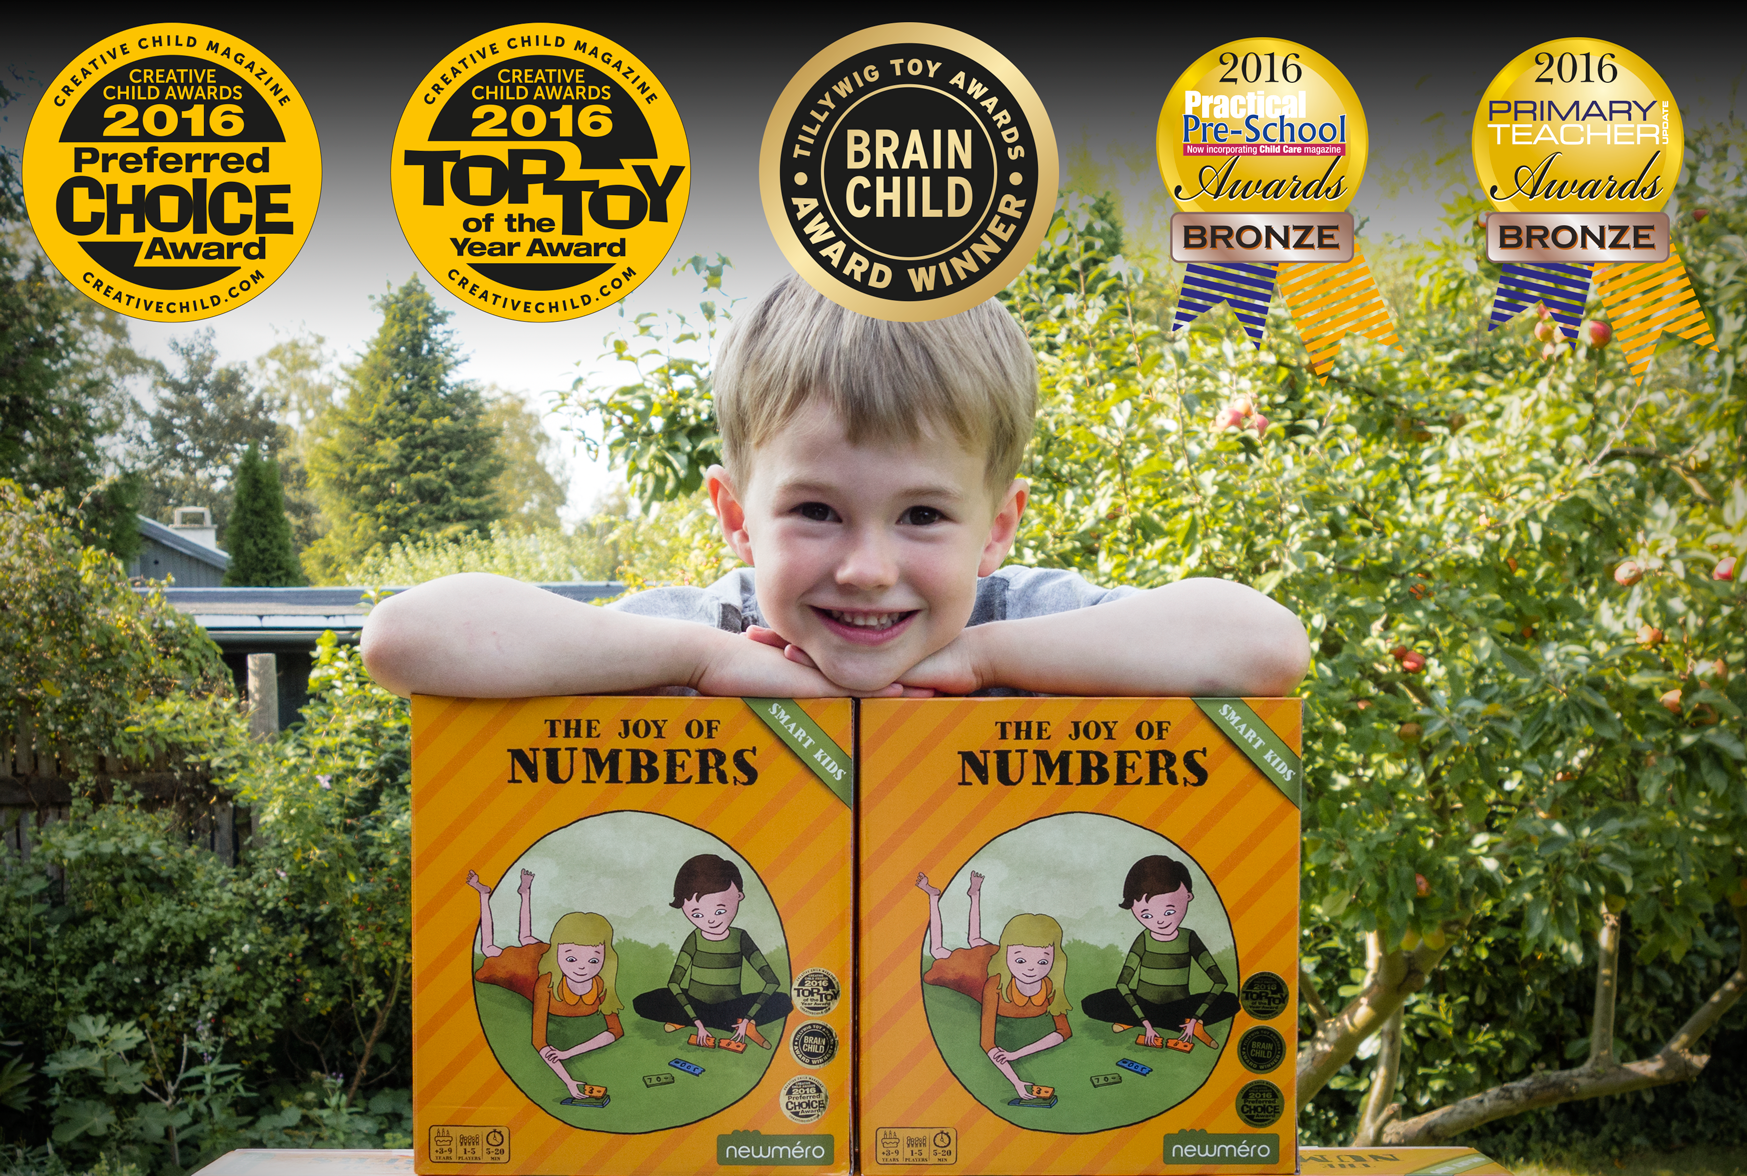 The Joy of Numbers received 6 Toy Awards in 2016